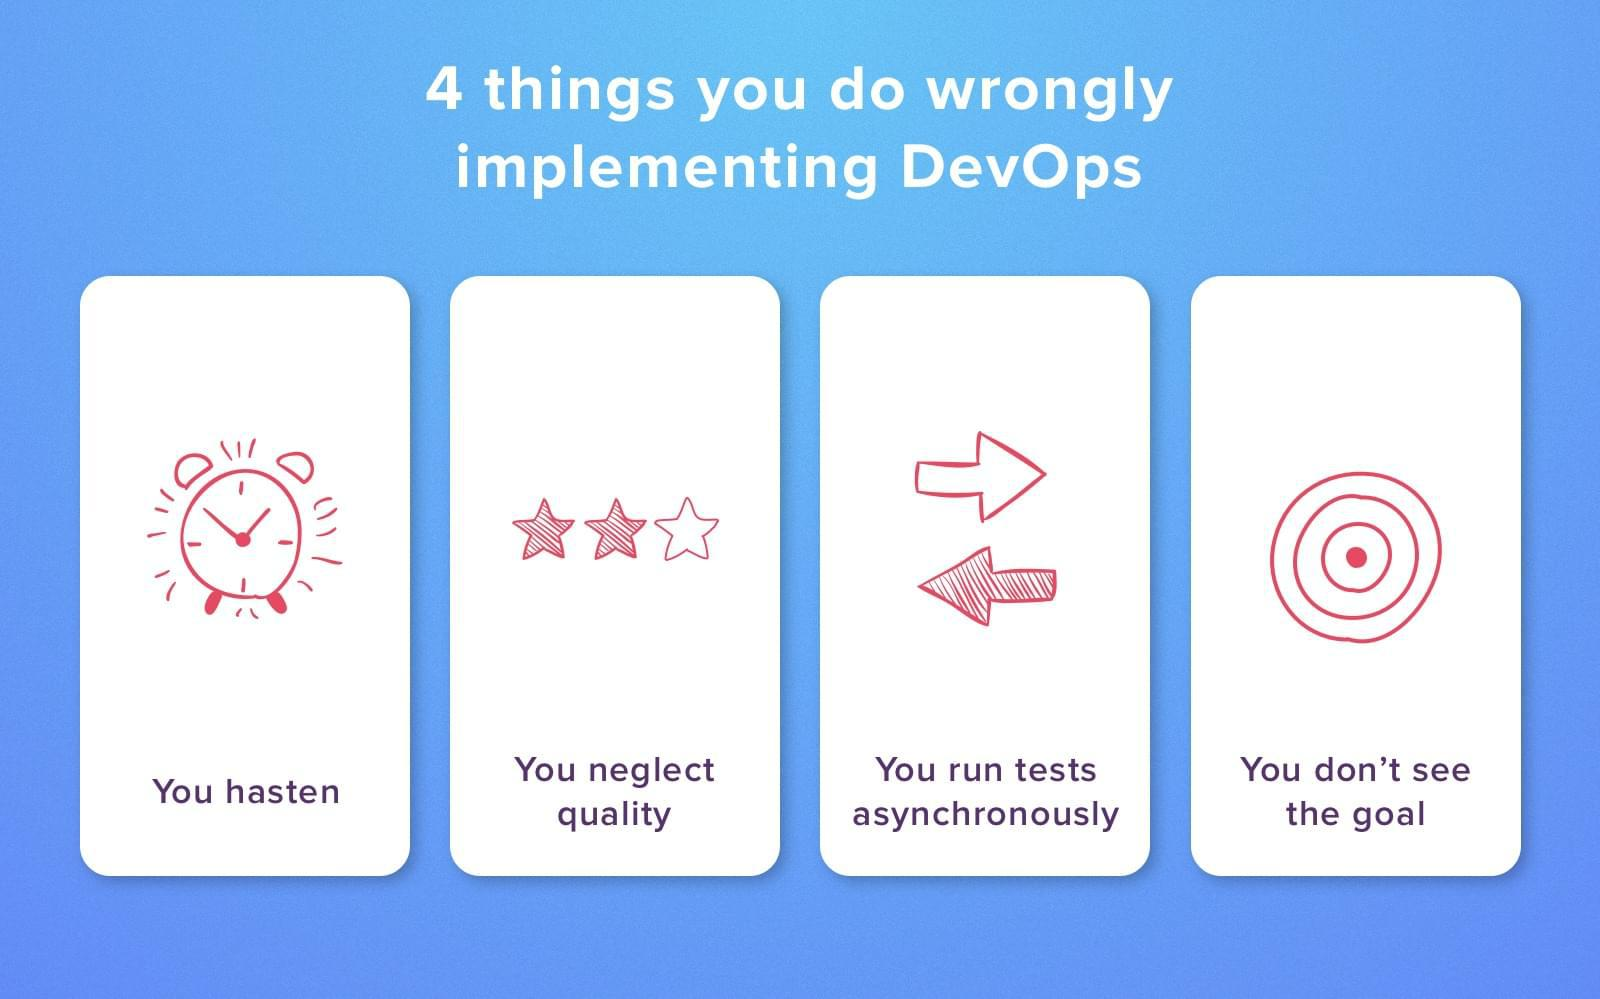 Implementing DevOps